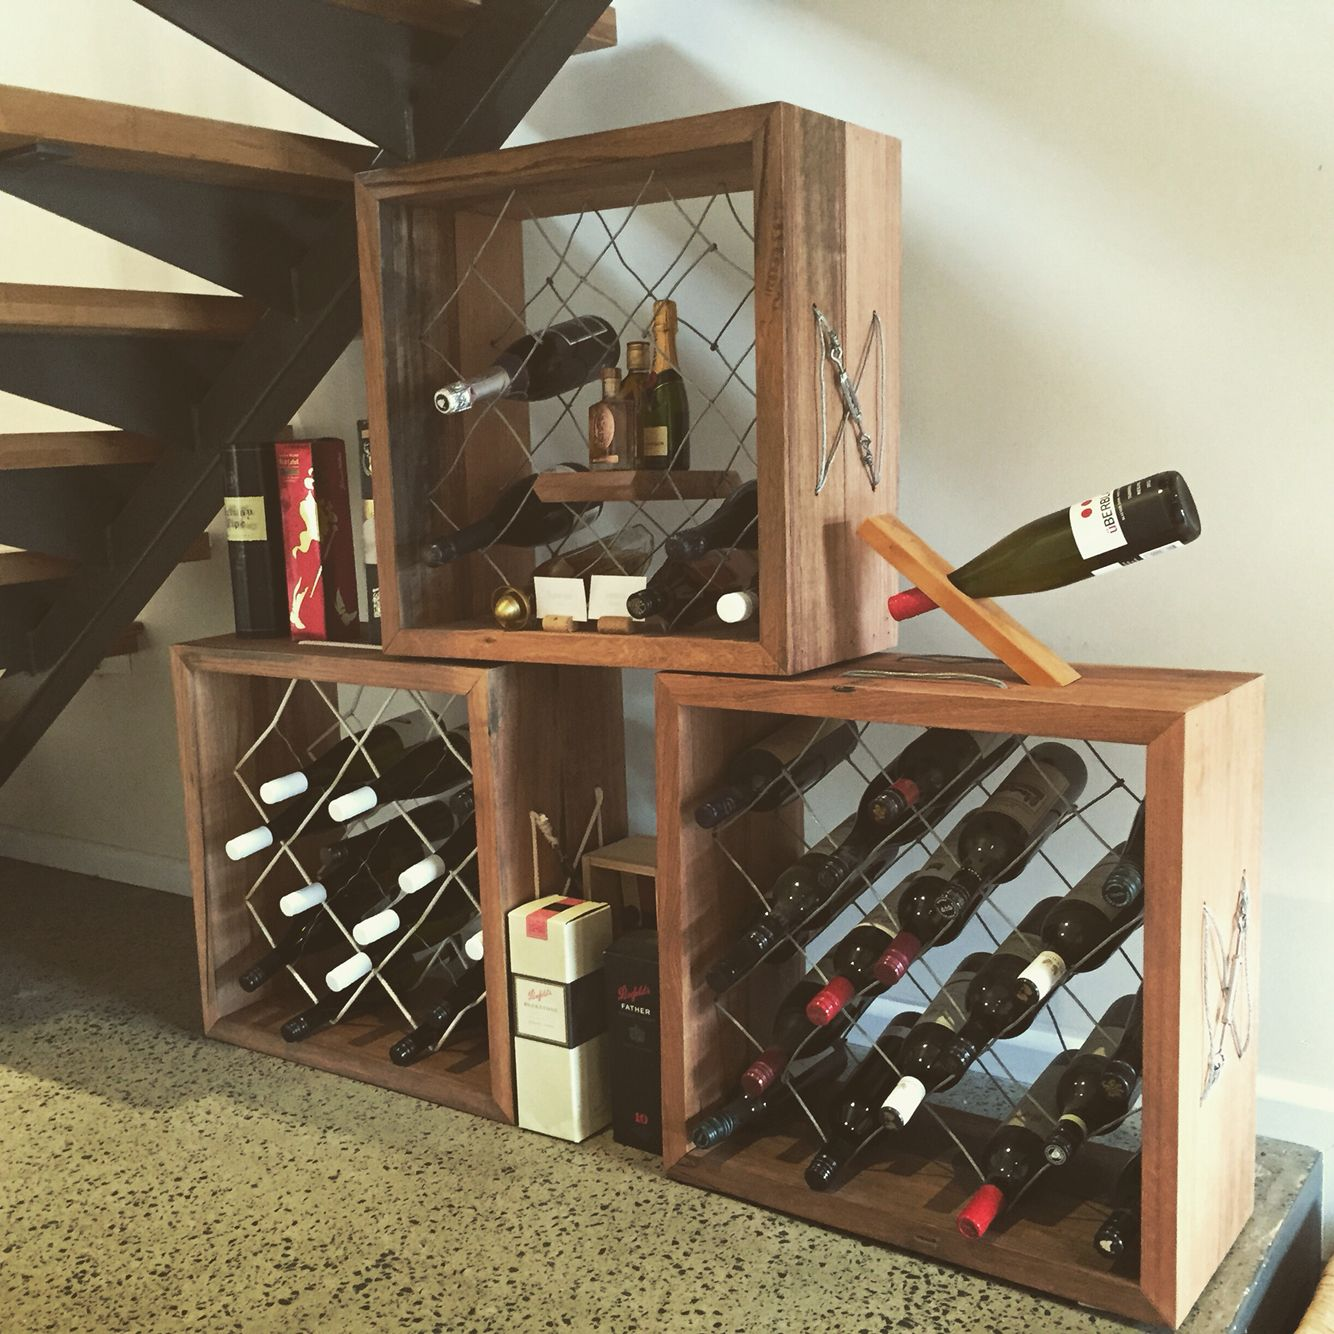 Wire rope wine racks - by Tim Brewer | Creations | Pinterest